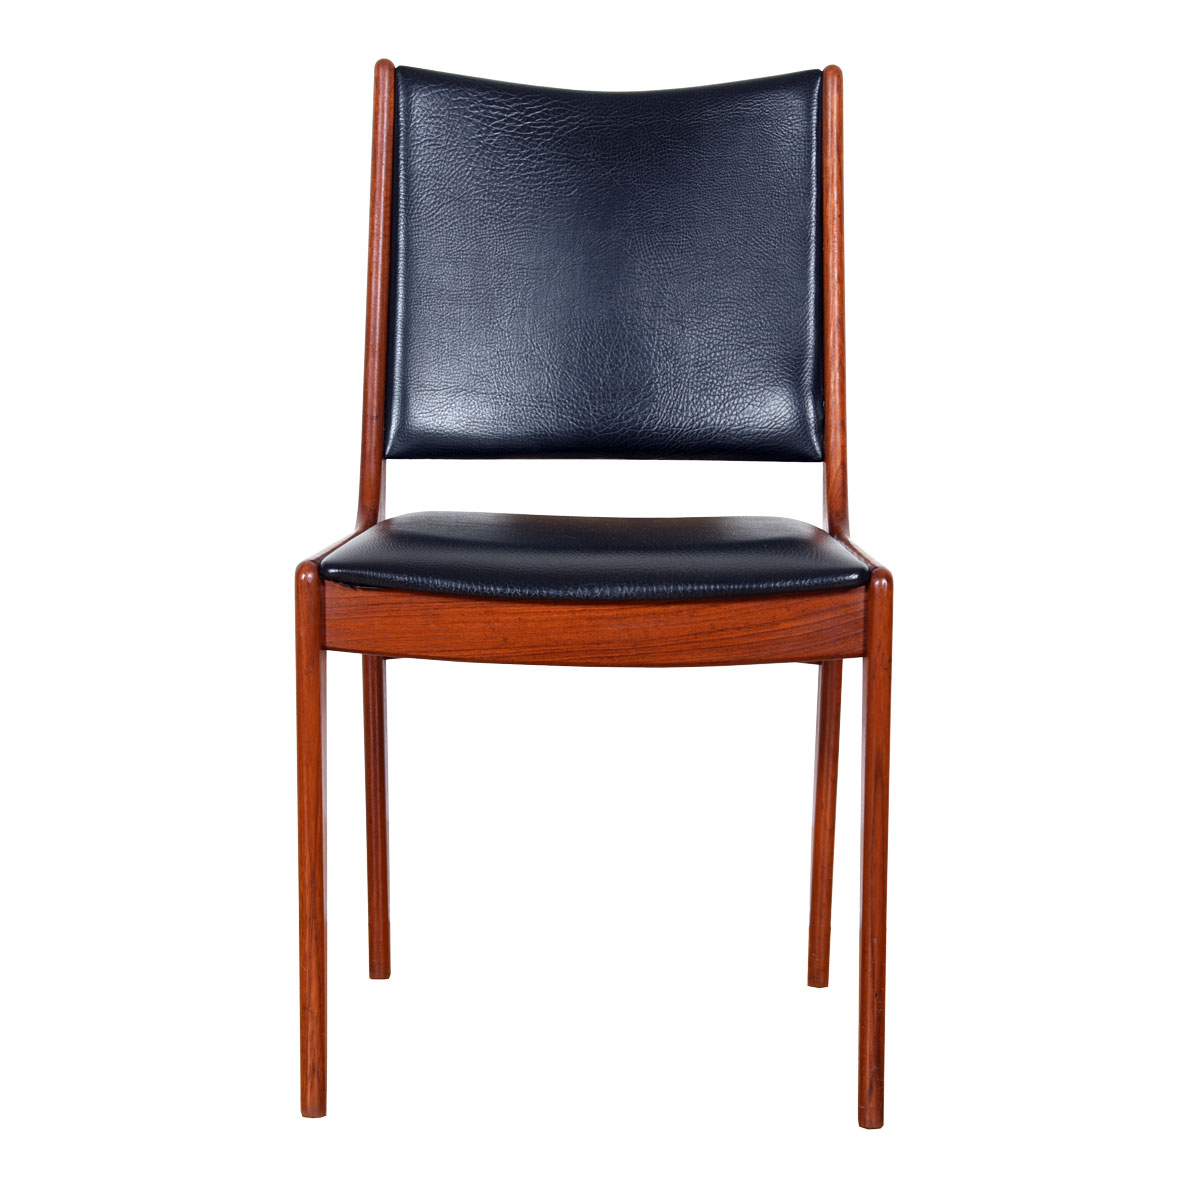 Set of 4 Teak and Black Dining Chairs by Johannes Andersen